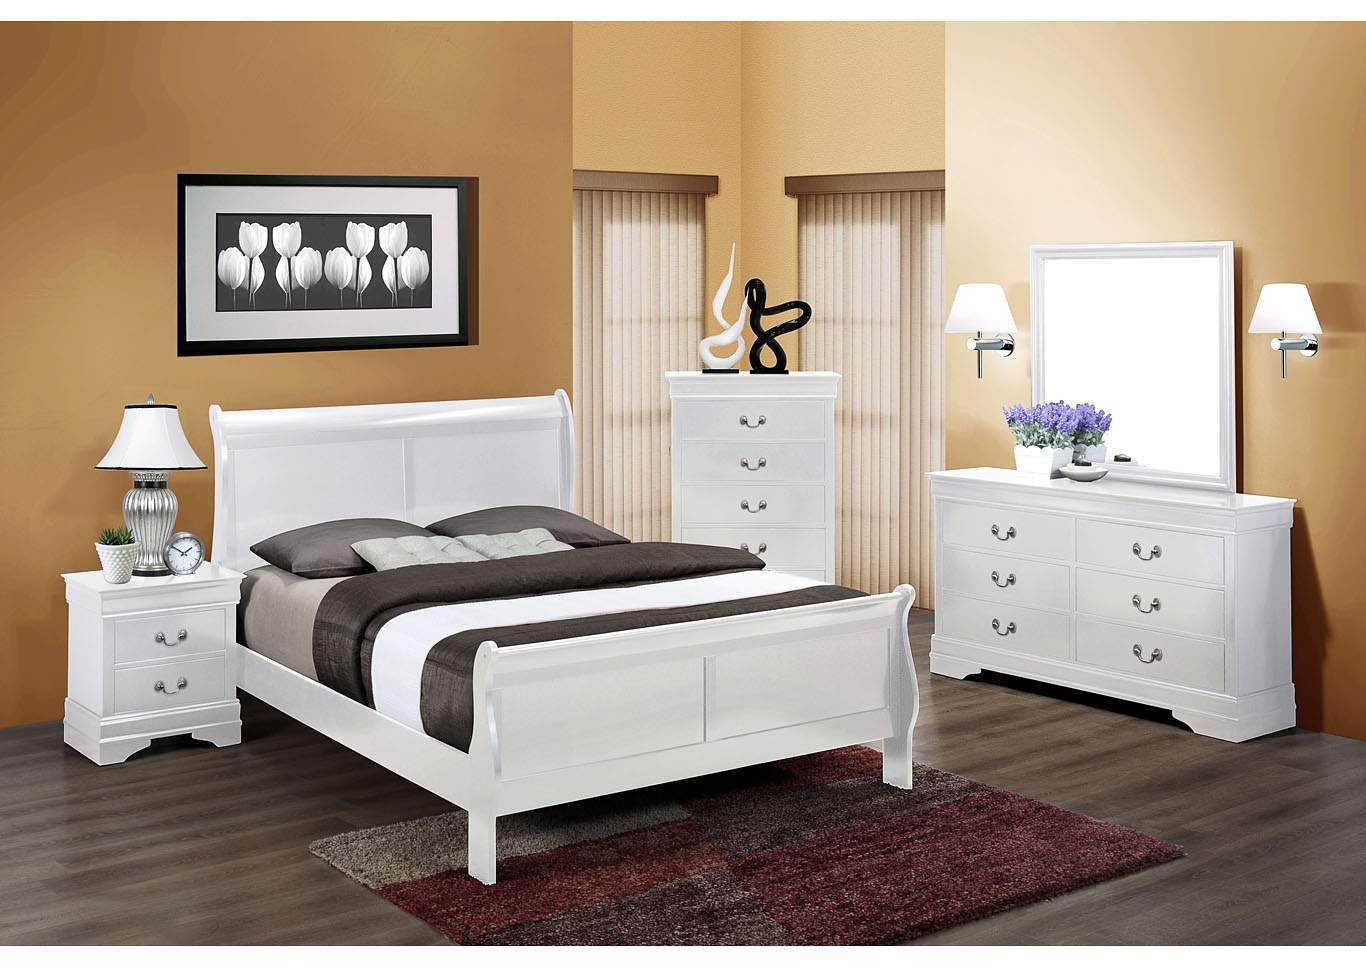 Louis Philip White California King Sleigh Bed w/6 Drawer Dresser, Mirror and Nightstand,Crown Mark